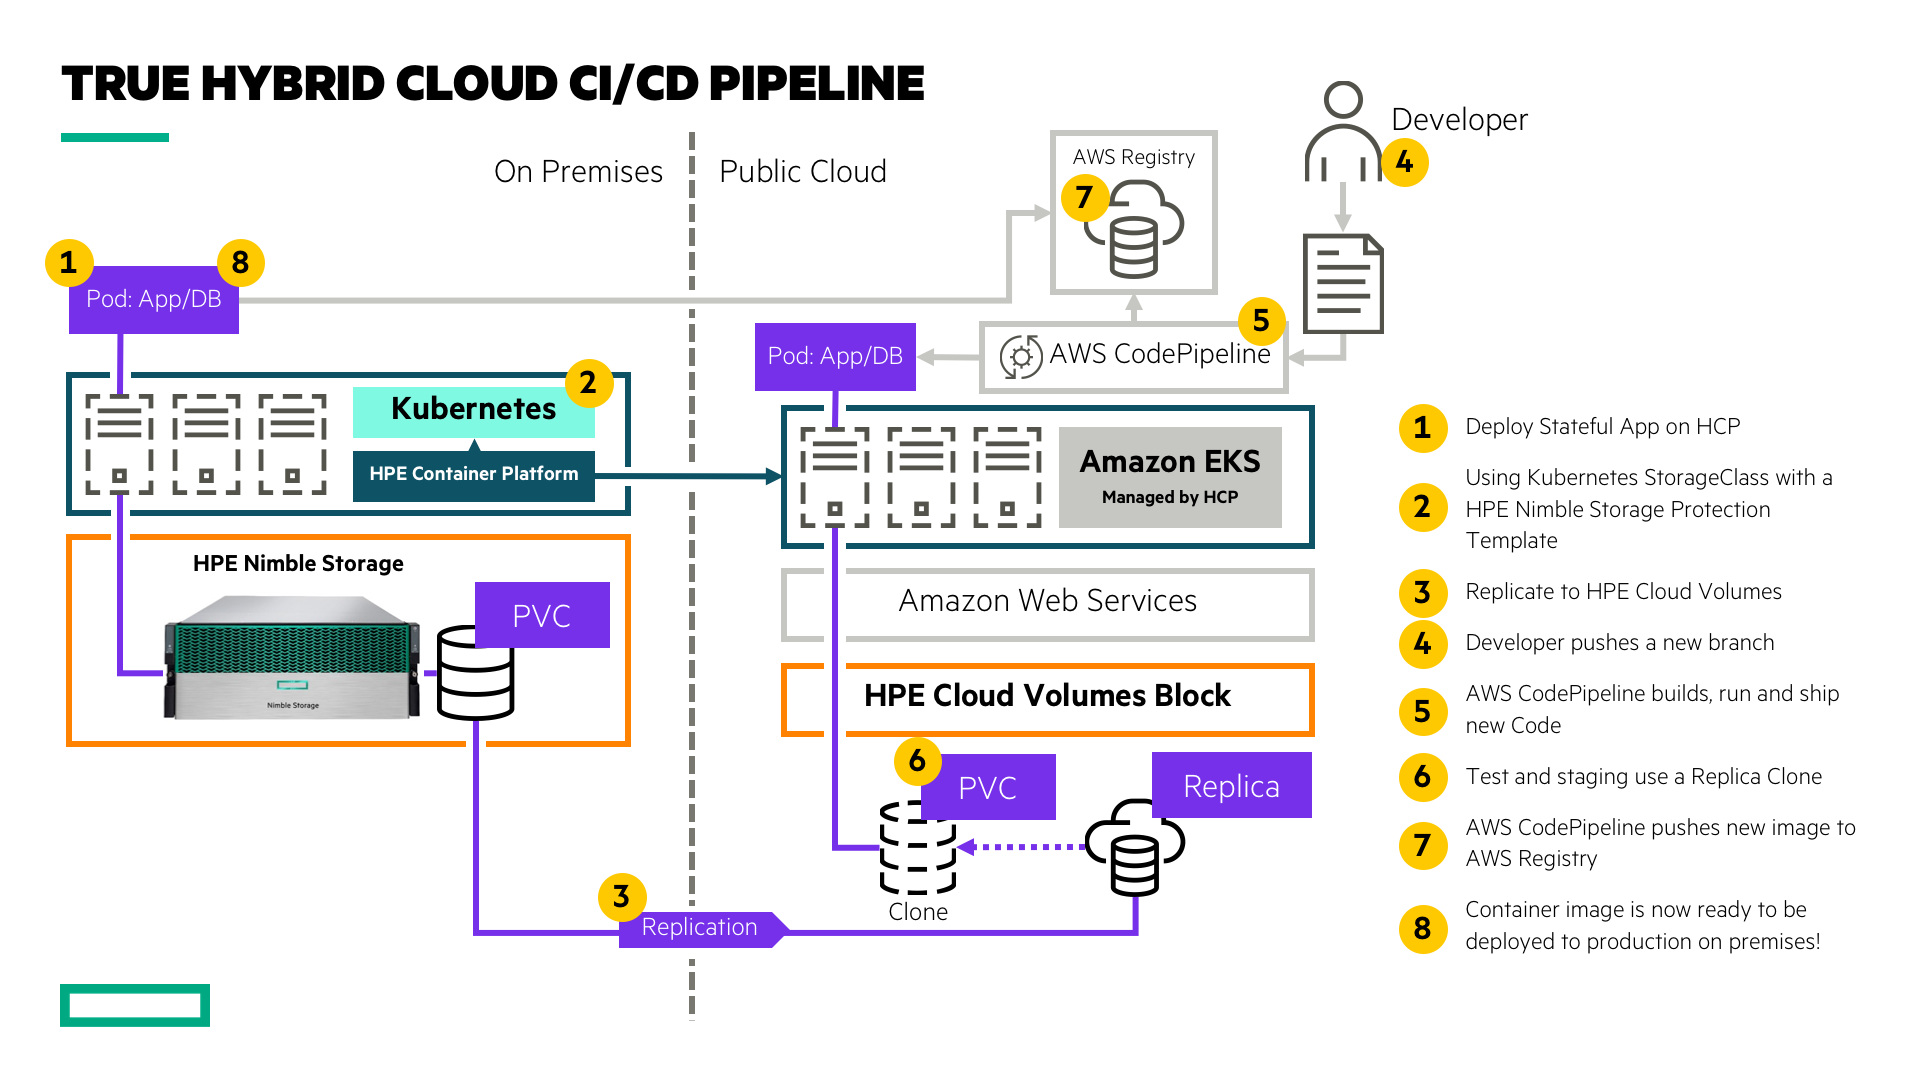 True Hybrid Cloud CI/CD Pipelines Accelerated by HPE